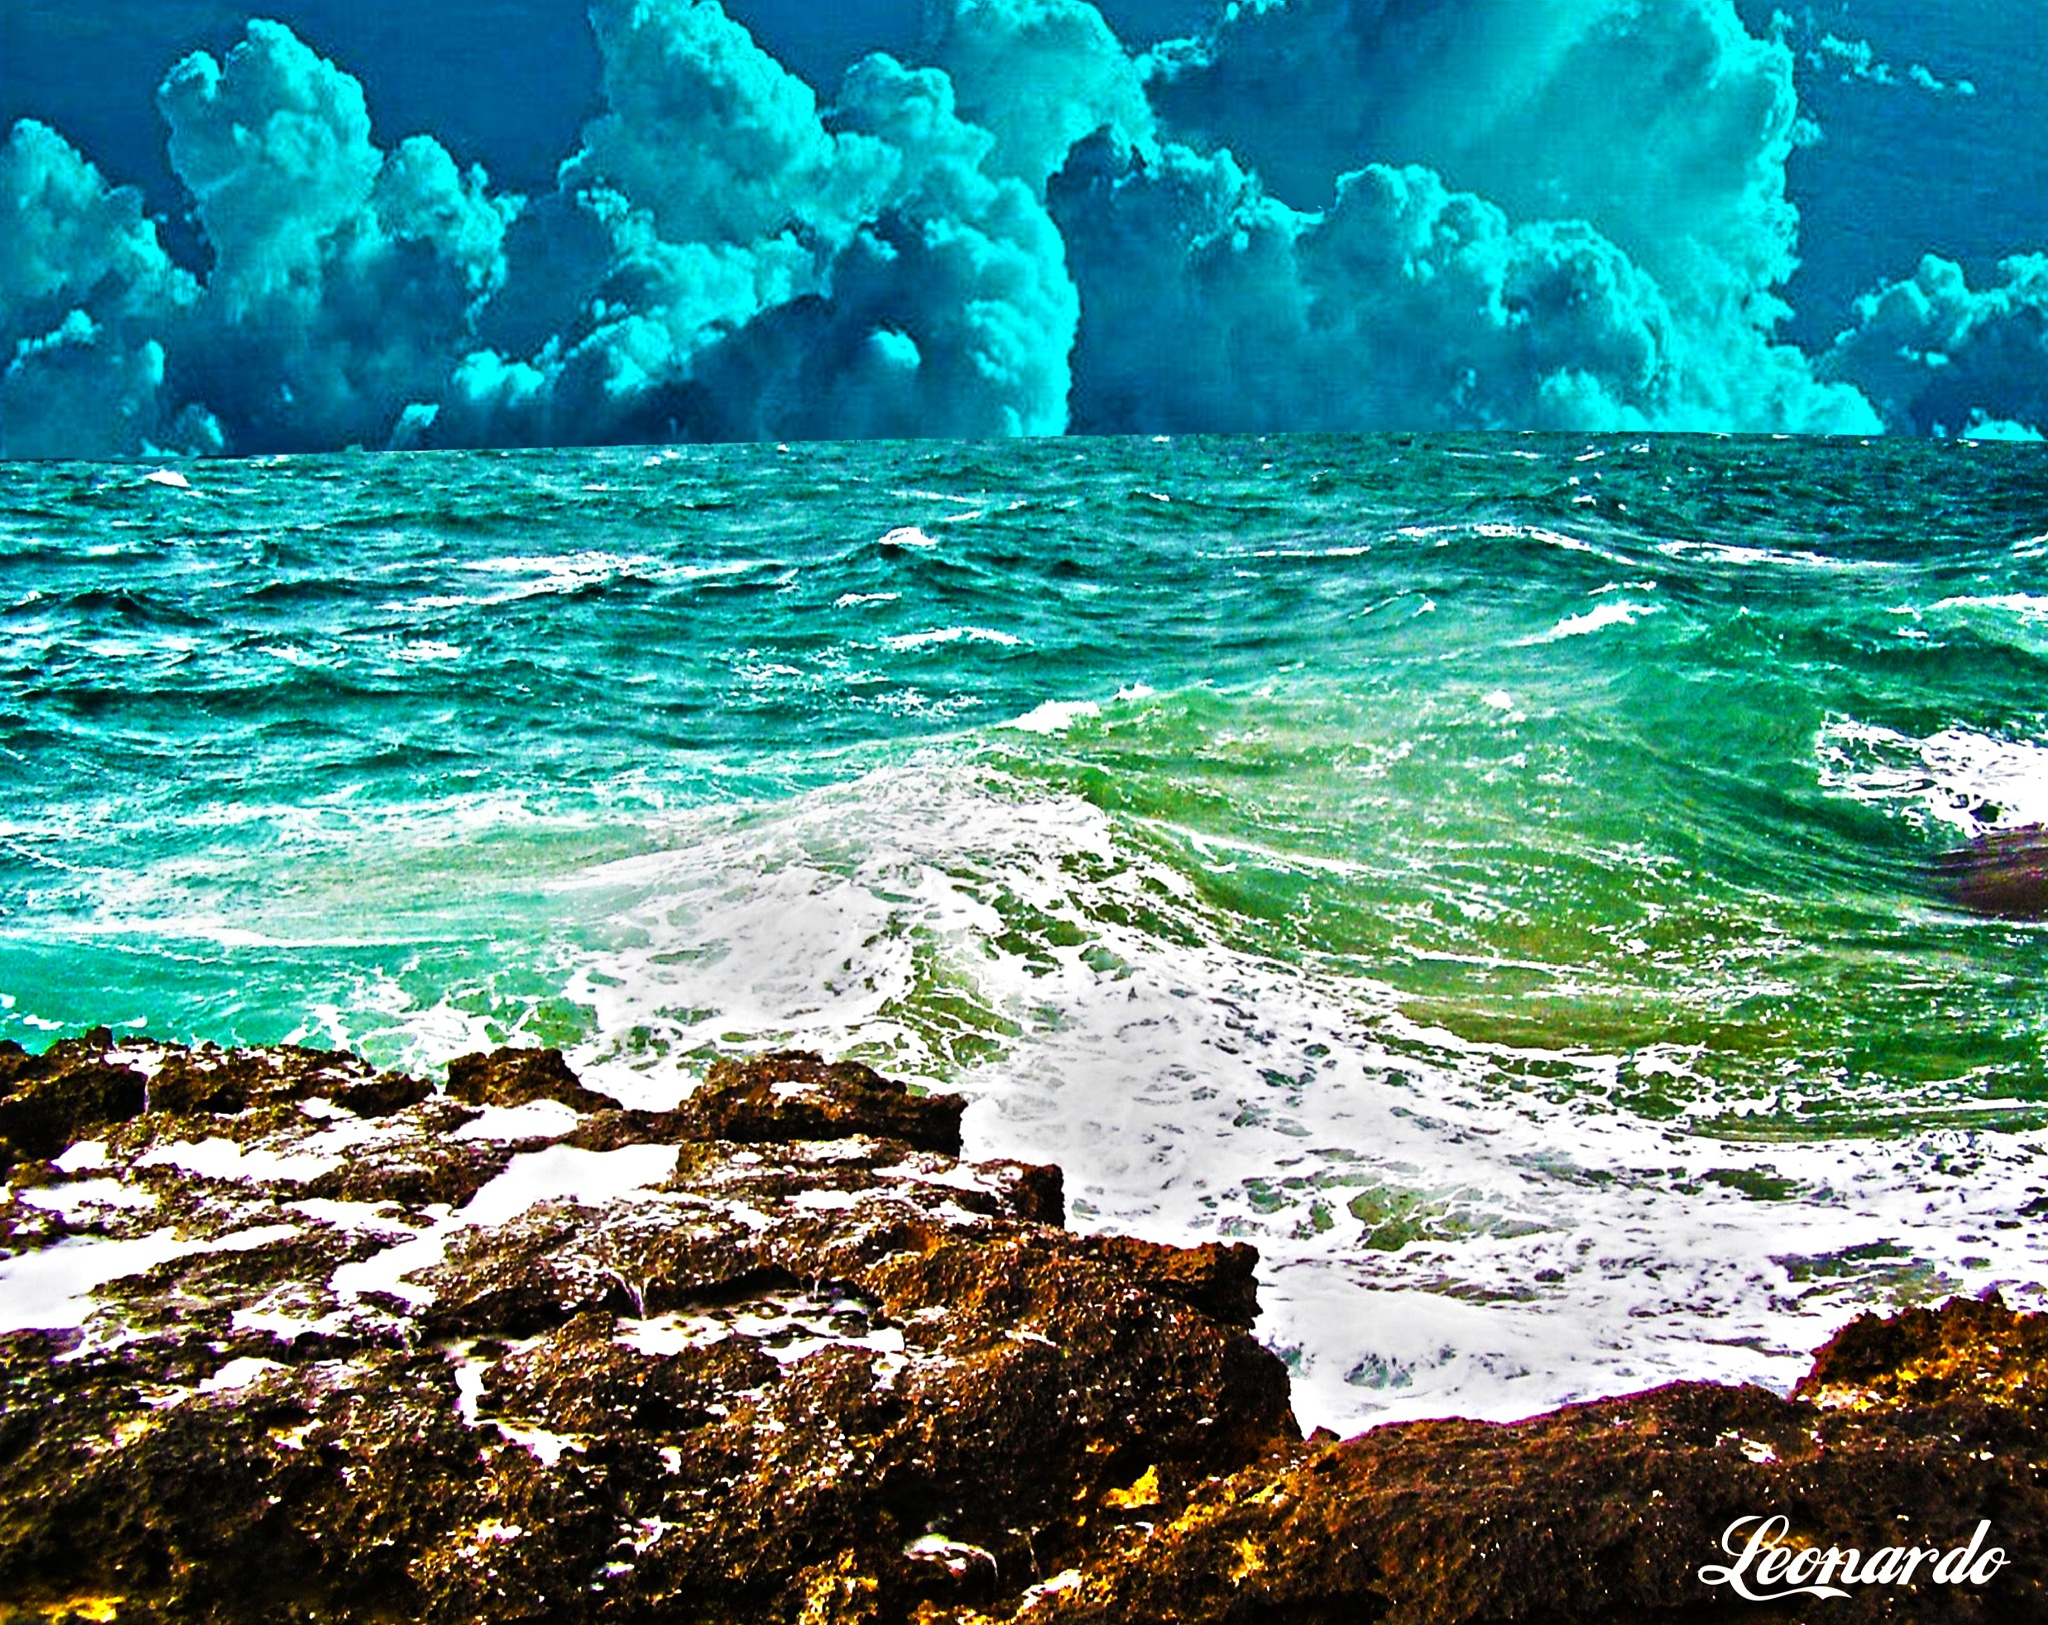 The sea is the voice of the heart by gravinall